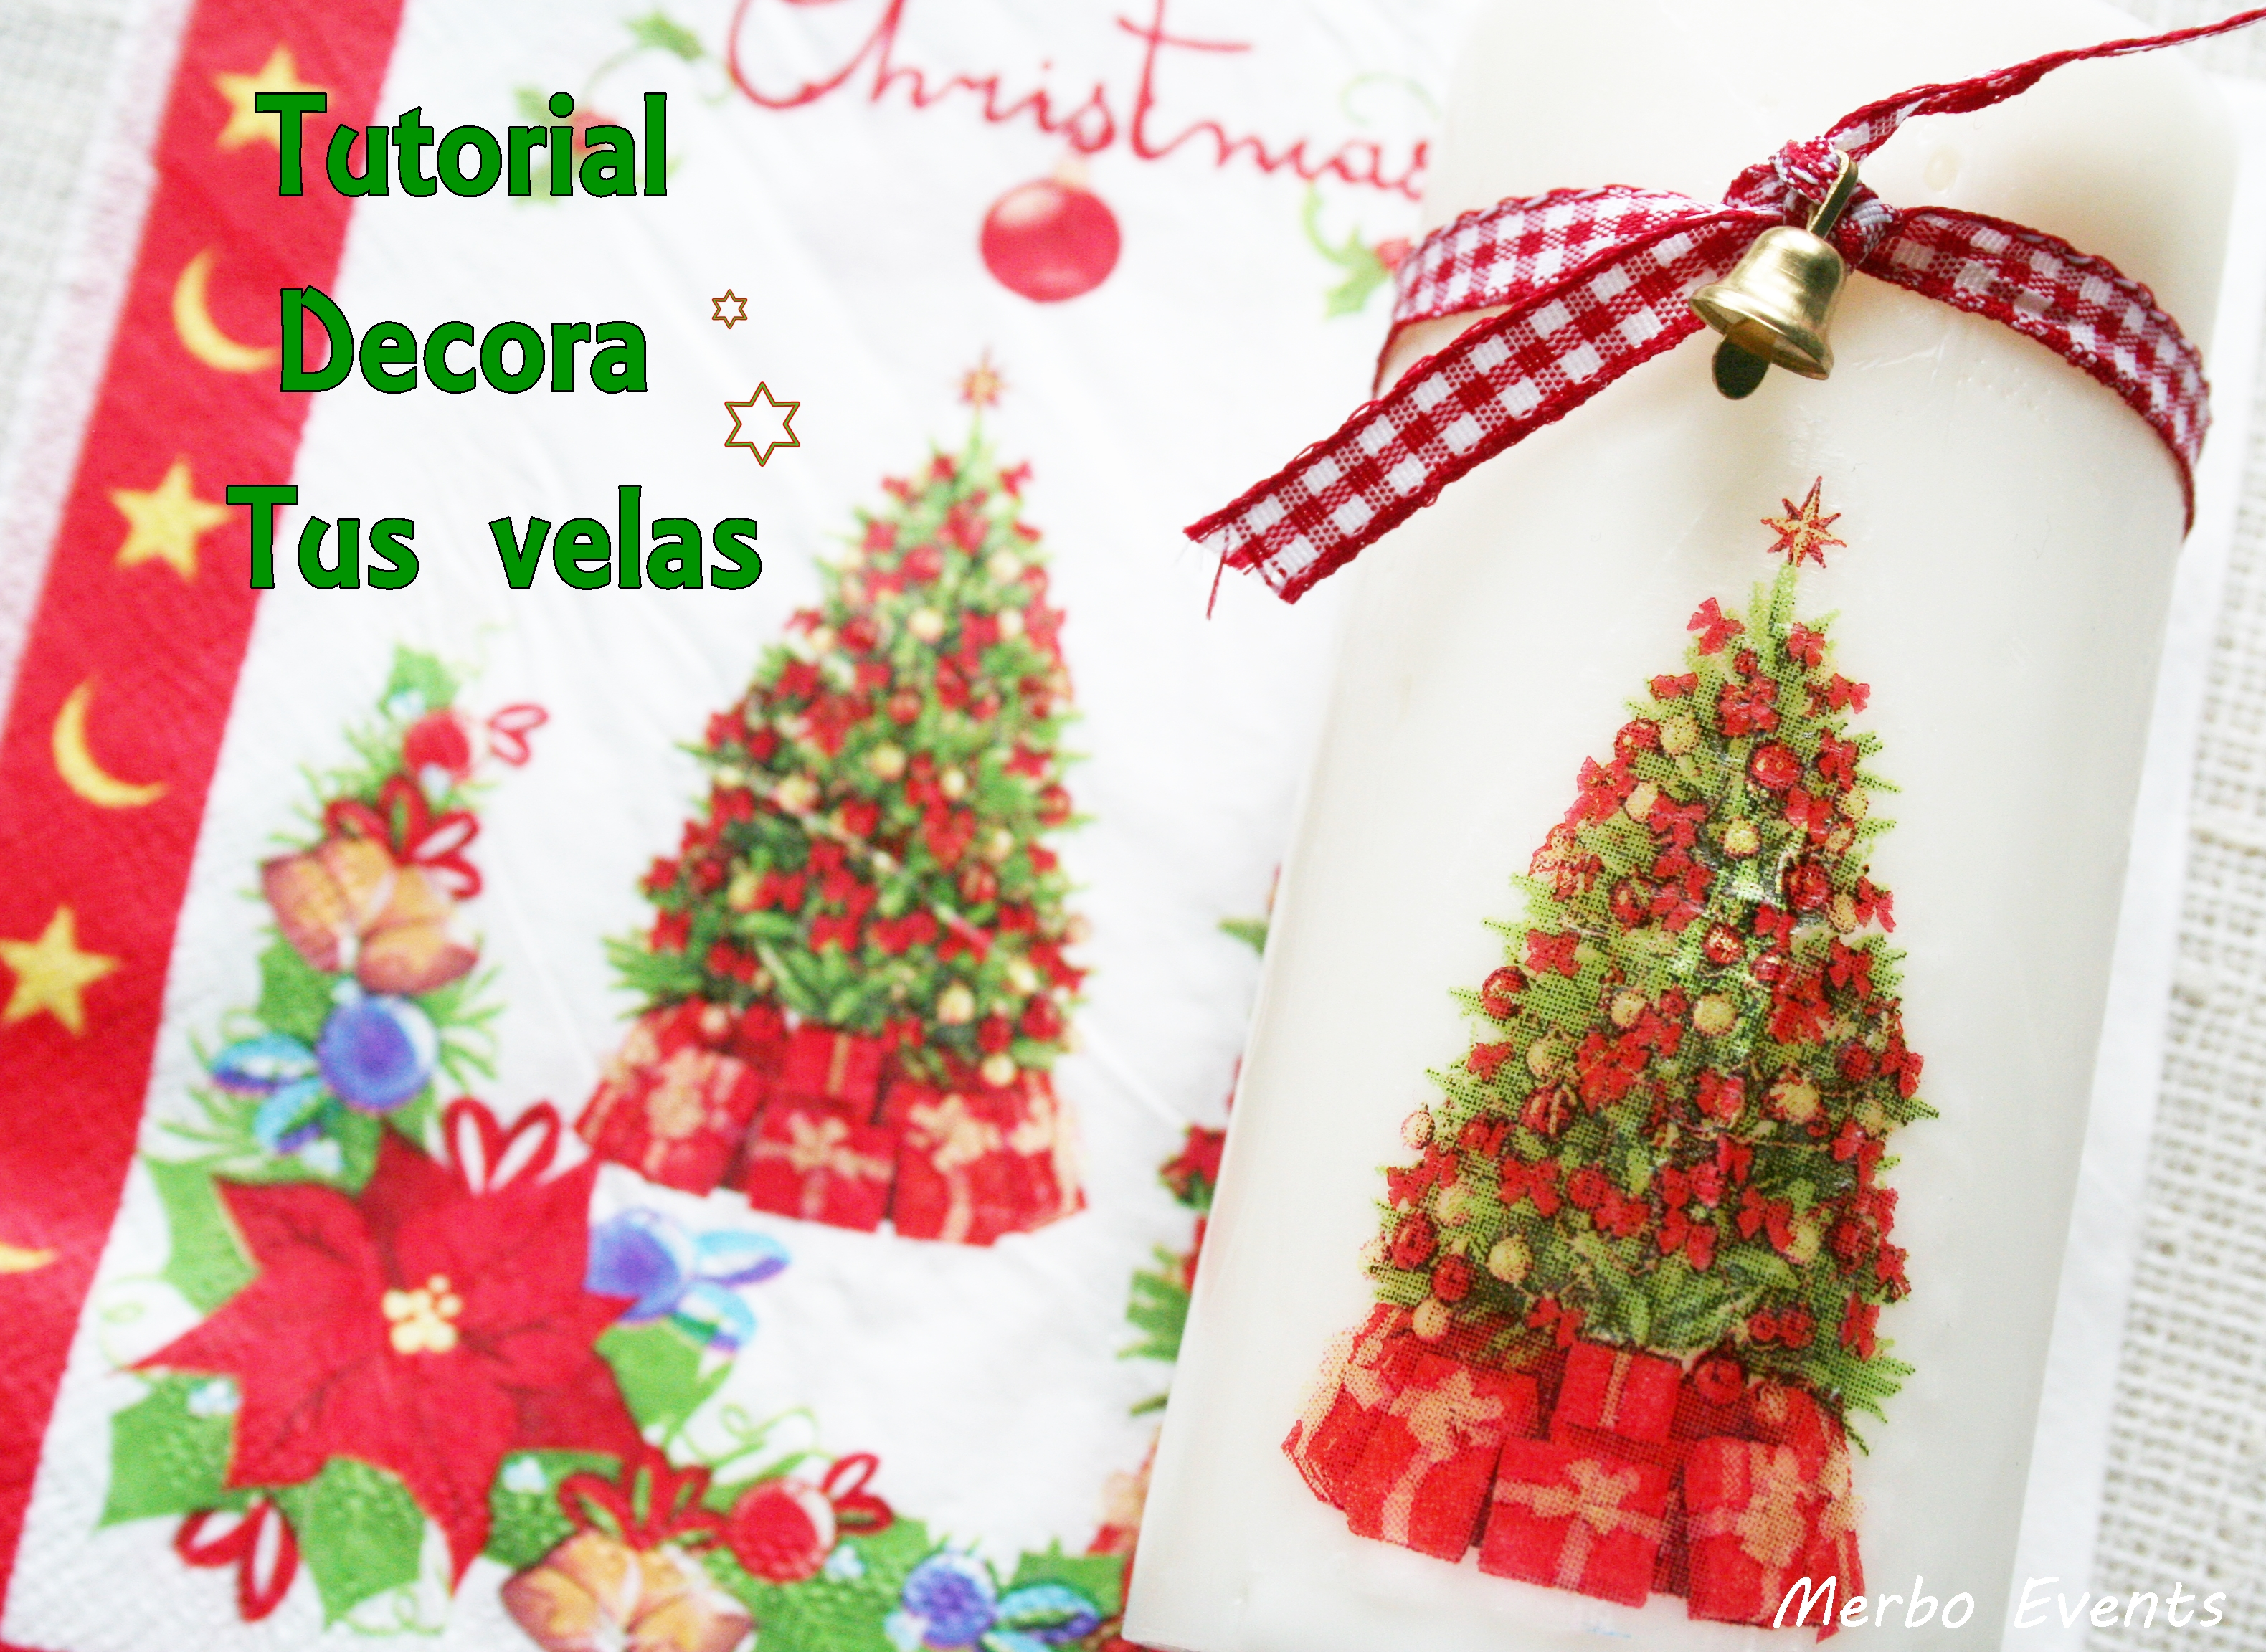 tutotial decora velas